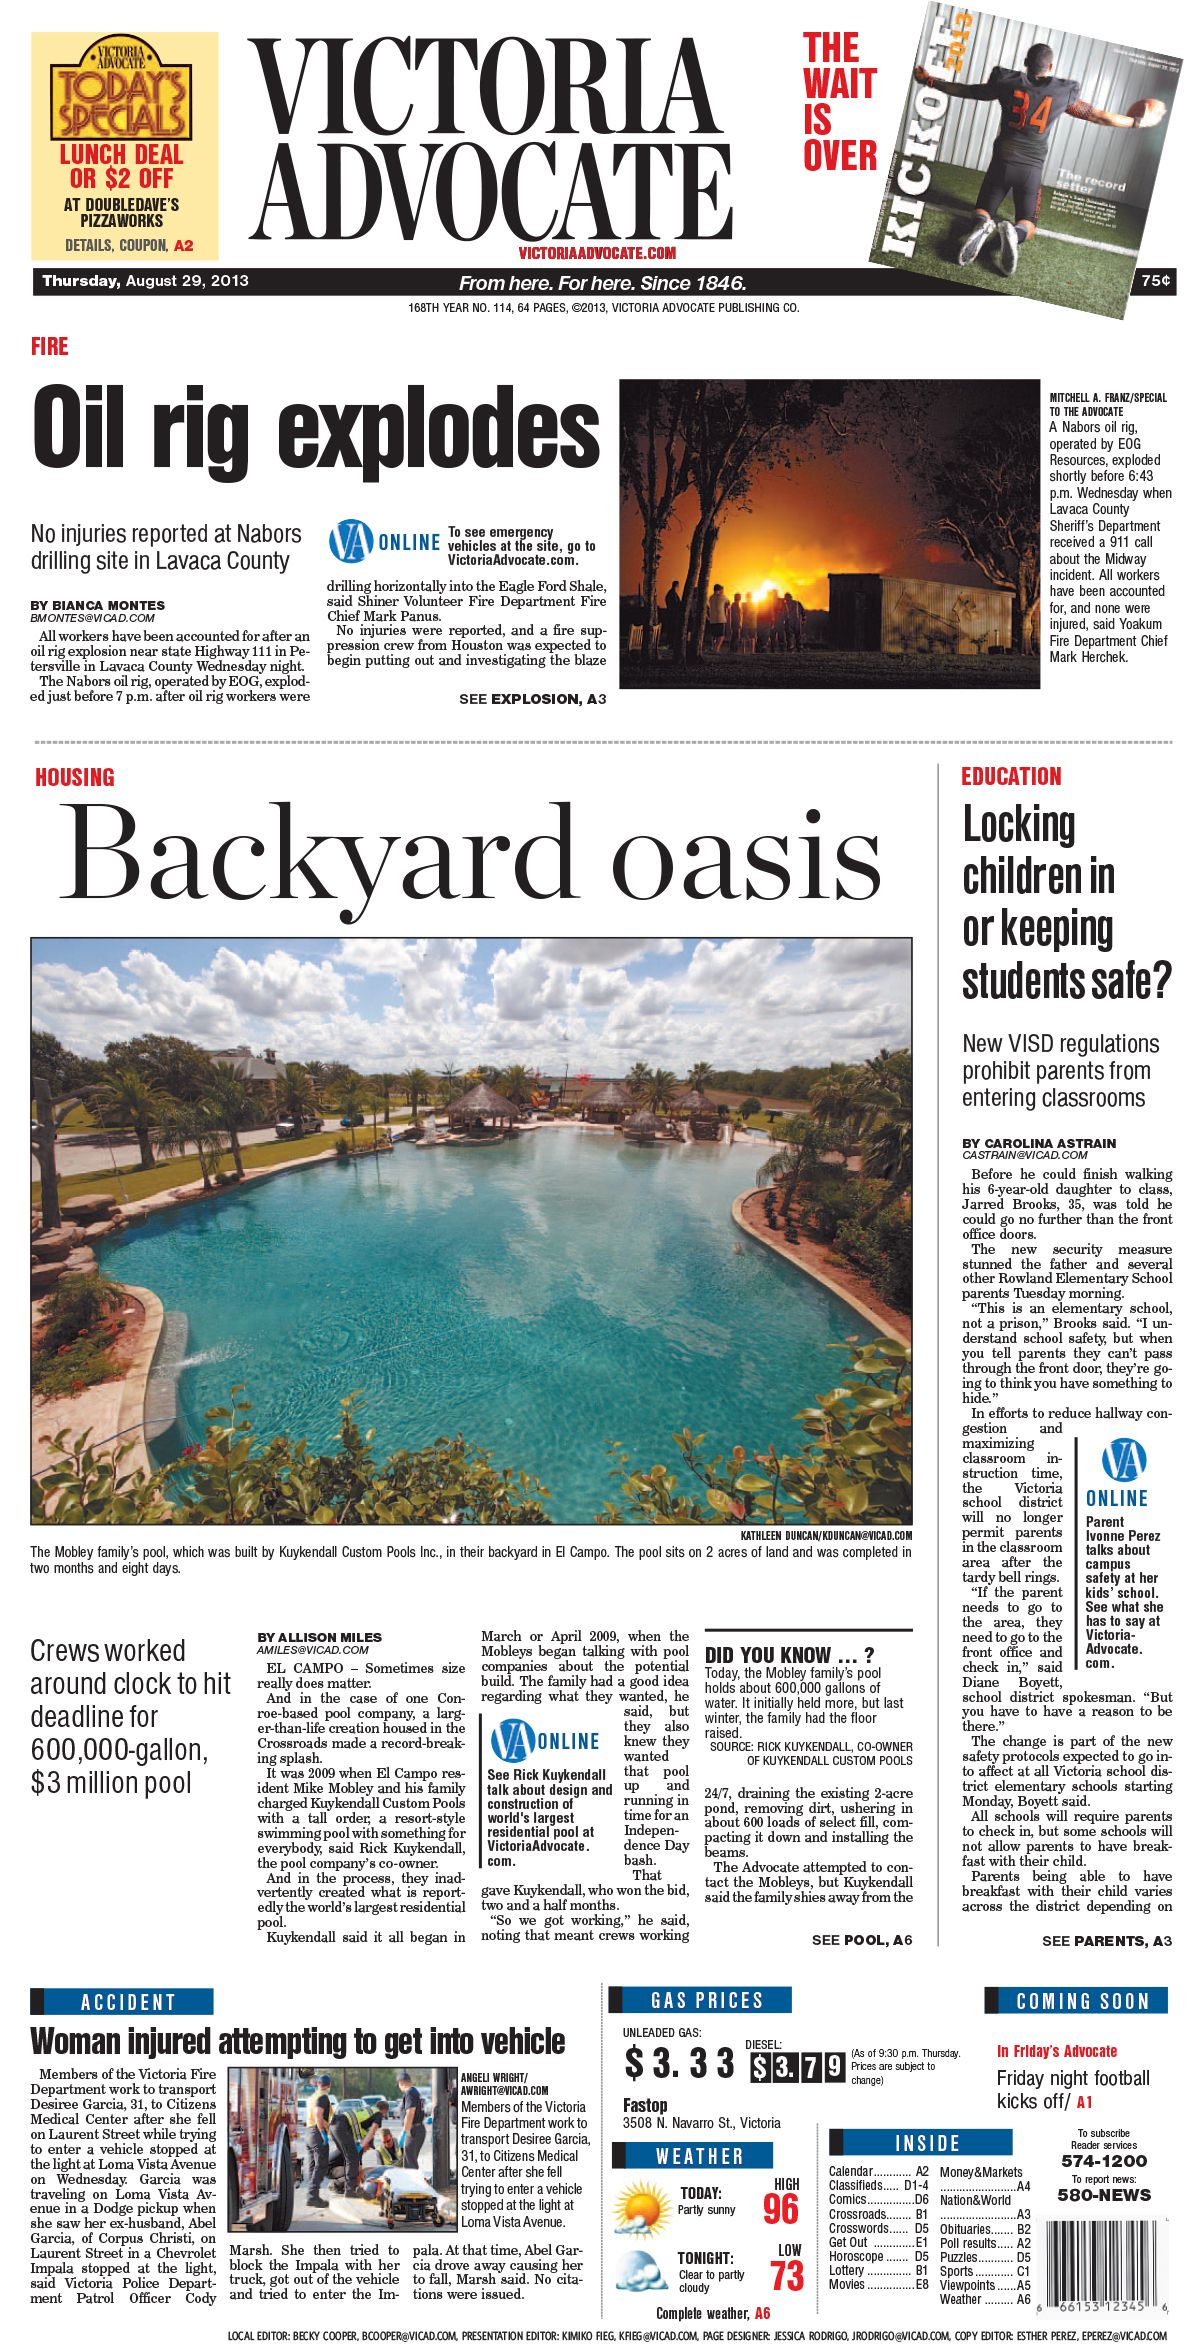 Here is the front page of the Victoria Advocate for Thursday, Aug. 29, 2013. To subscribe to the award-winning Victoria Advocate, please call 361-574-1200 locally or toll-free at 1-800-365-5779. Or you can pick up a copy at one of the numerous locations around the Crossroads region.